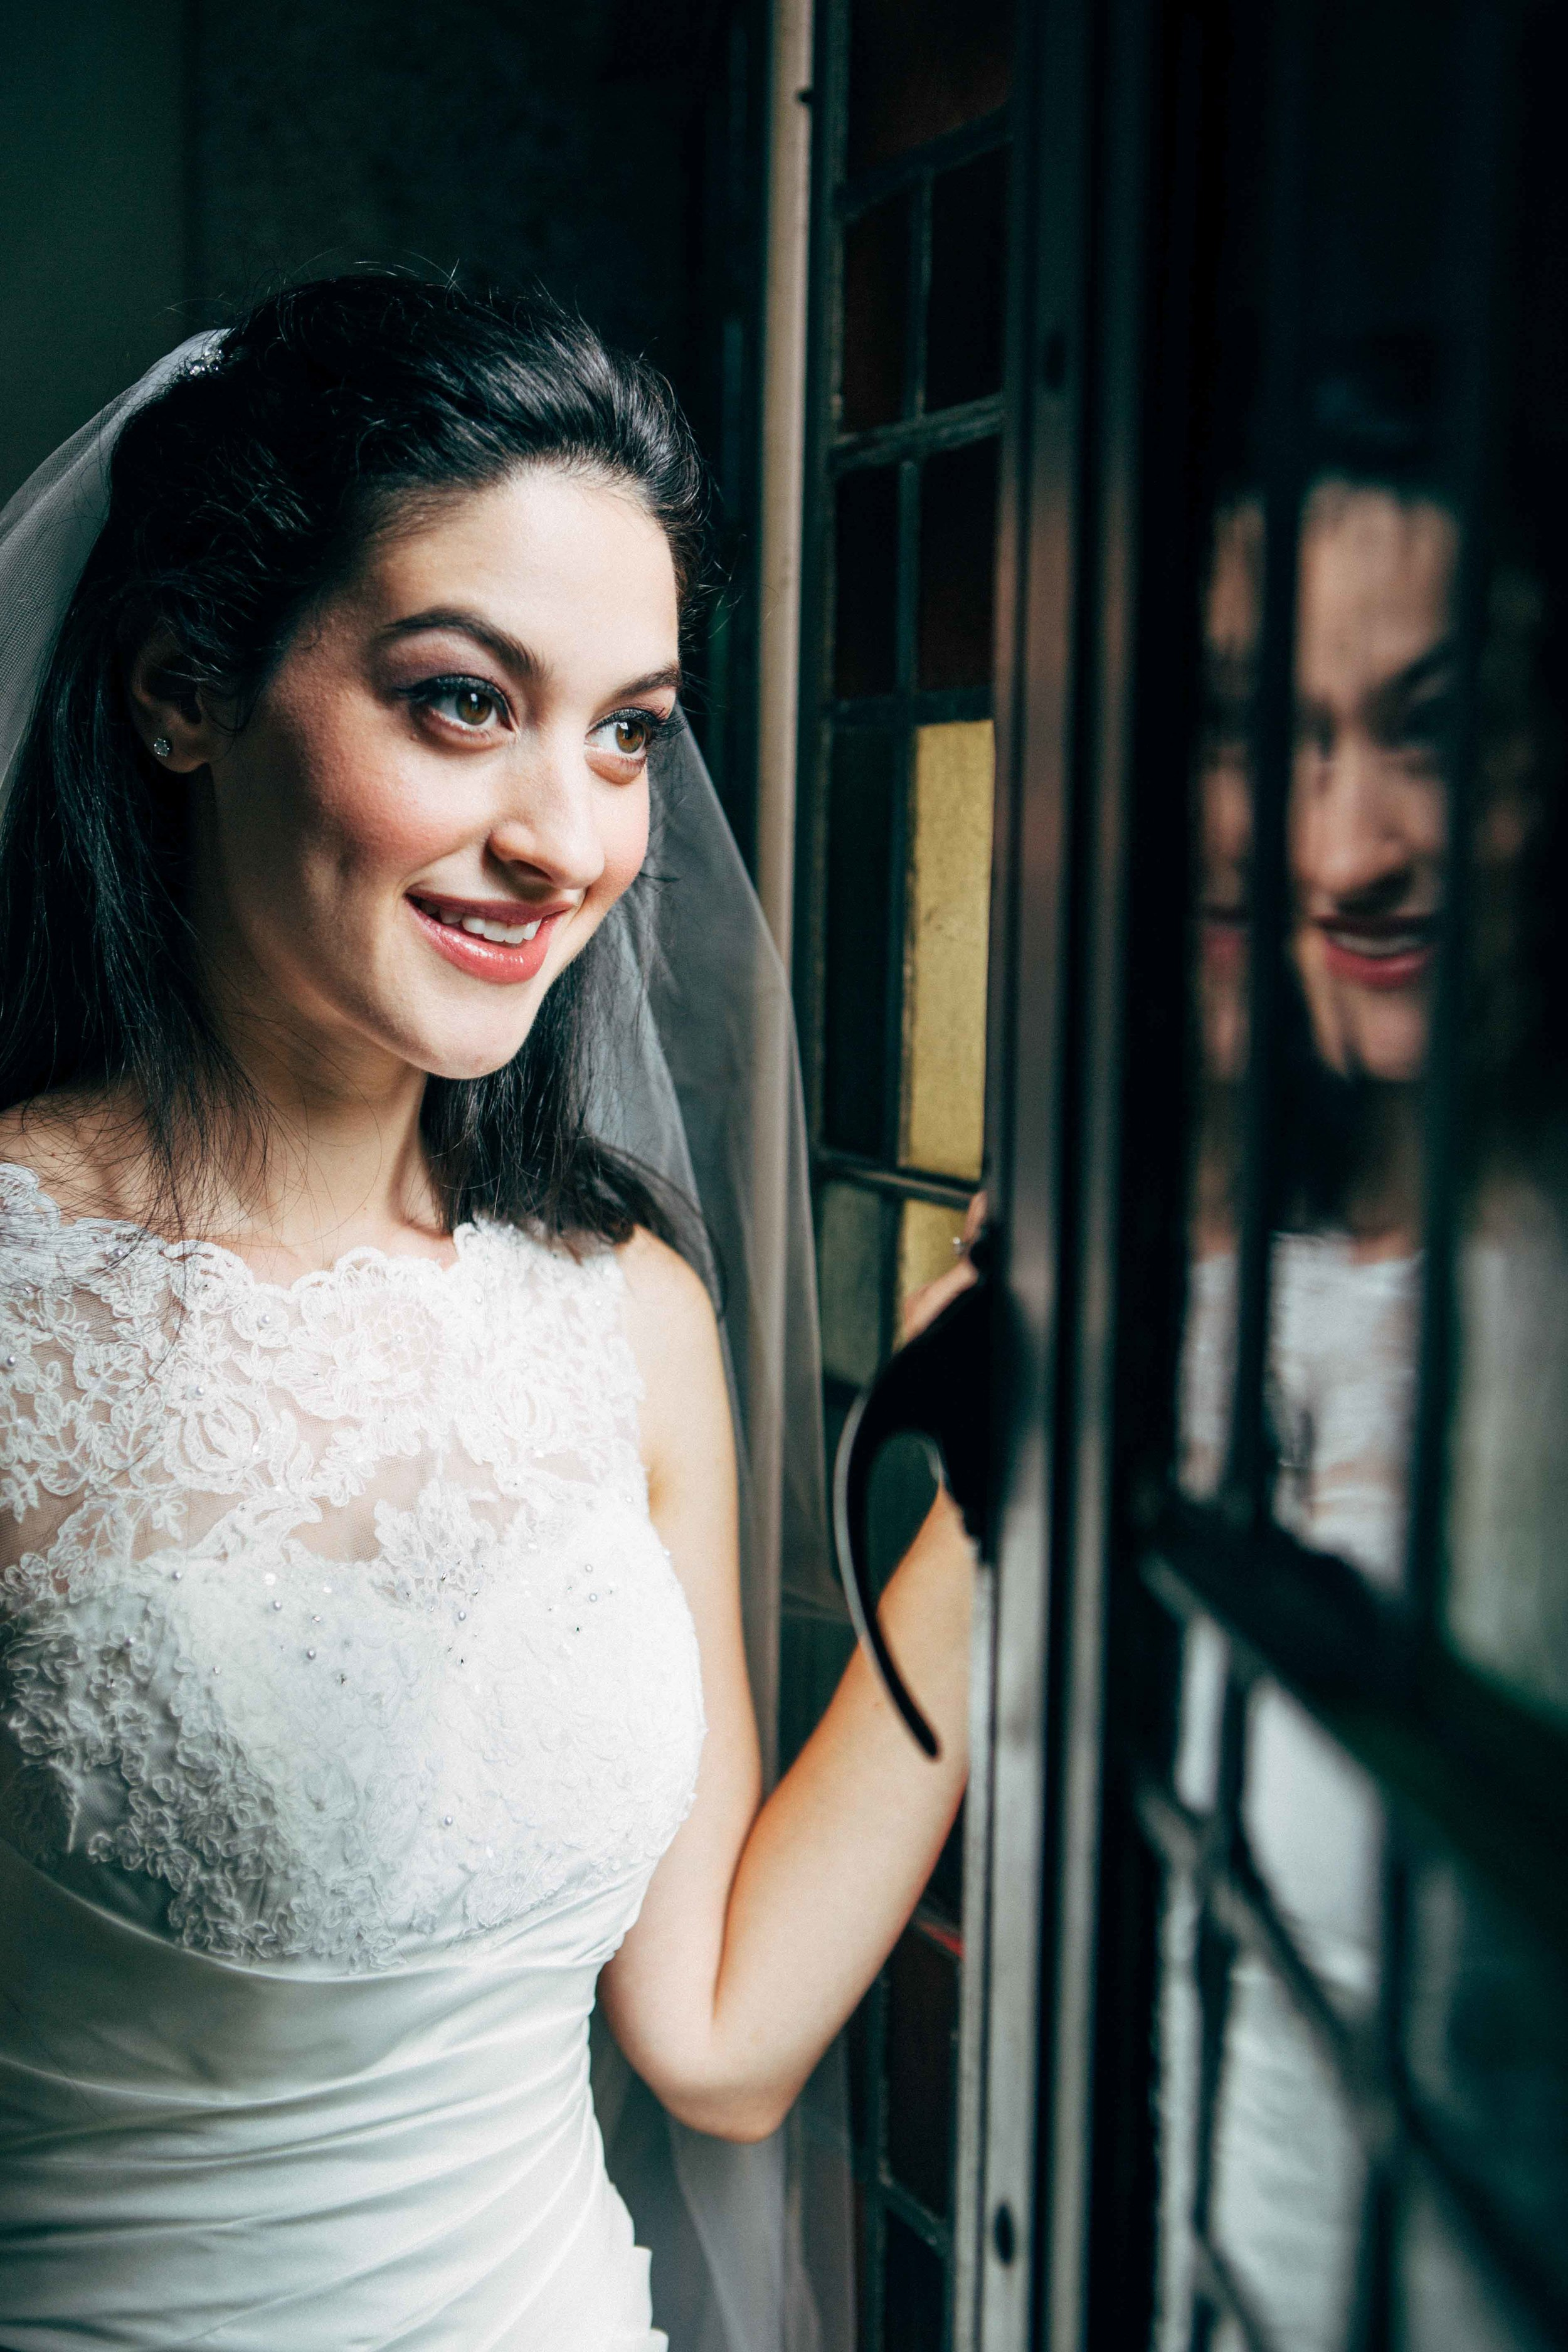 Belltower Bridal Portrait-8.jpg